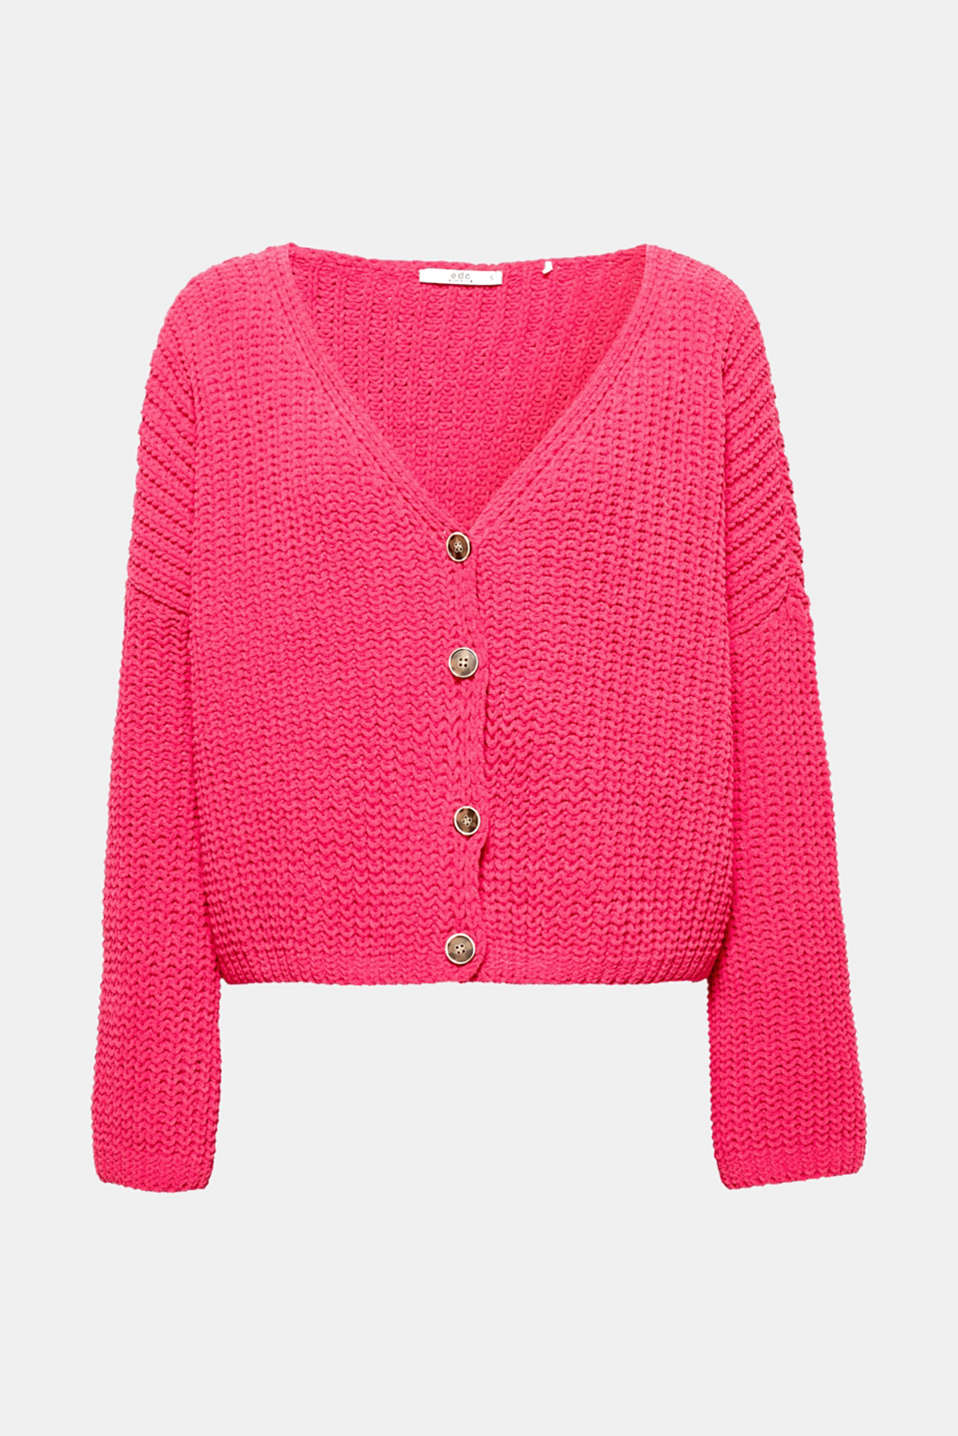 This cropped, soft knitted cardigan is the perfect essential for different combinations.